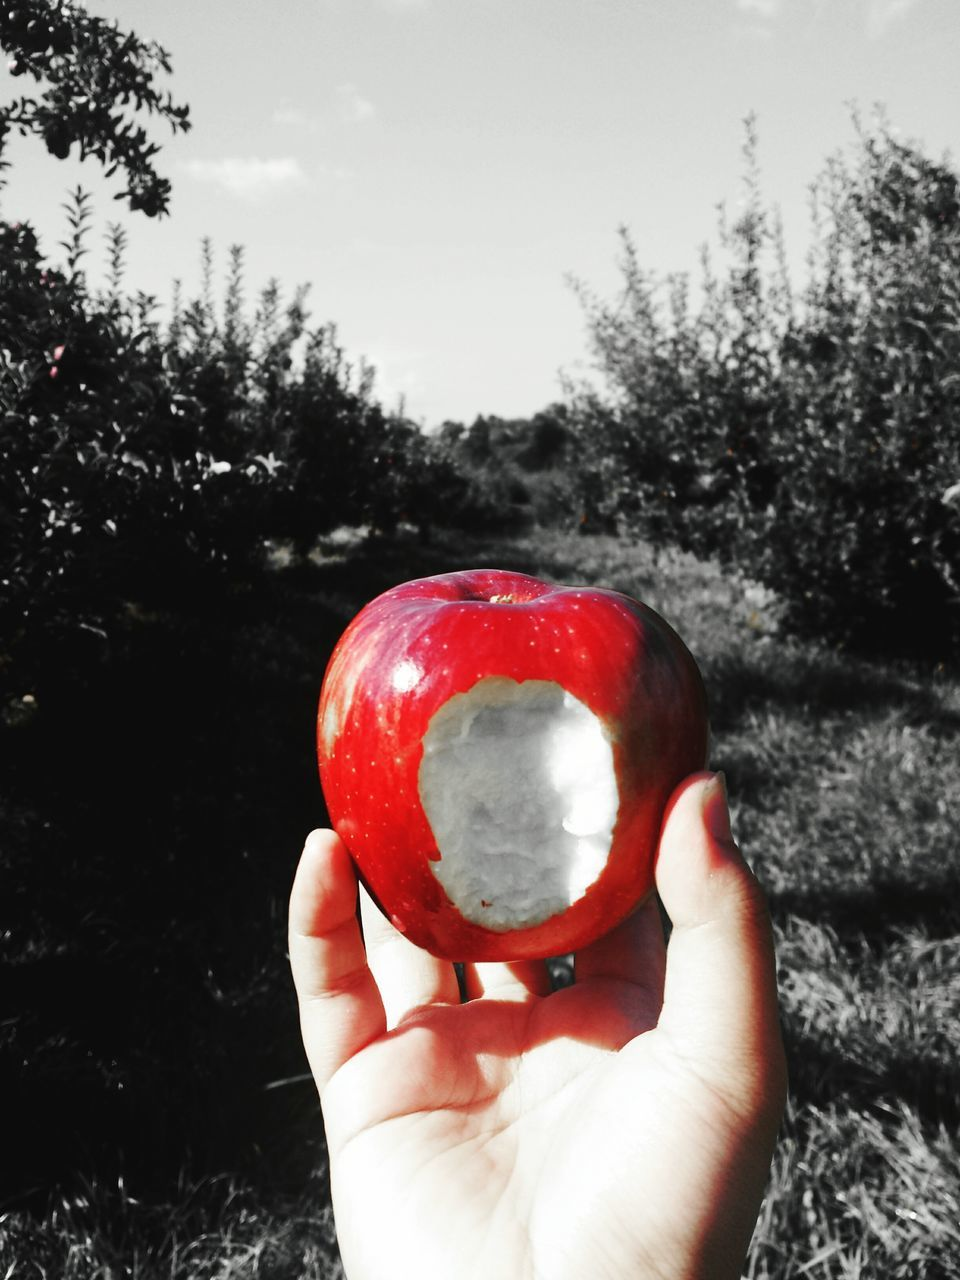 human hand, holding, human body part, tree, one person, fruit, food and drink, outdoors, real people, focus on foreground, close-up, freshness, day, healthy eating, red, food, sky, nature, cold temperature, people